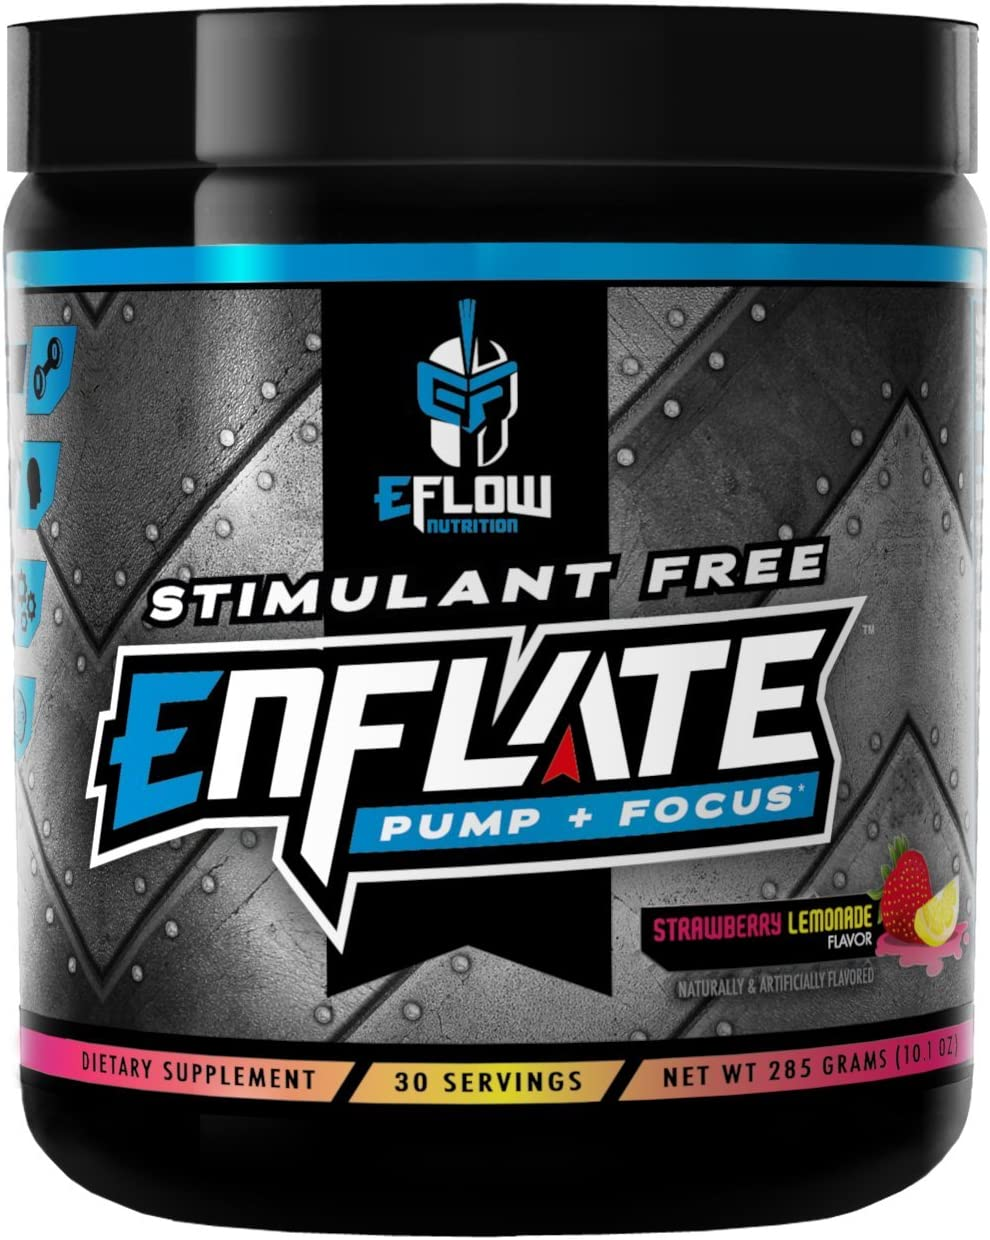 eFlow Nutrition Enflate Stimulant Free Preworkout Supplement – Pump and Focus Nootropic Pre Workout Powder to Boost Focus for Men Women – Strawberry Lemonade 30 Servings